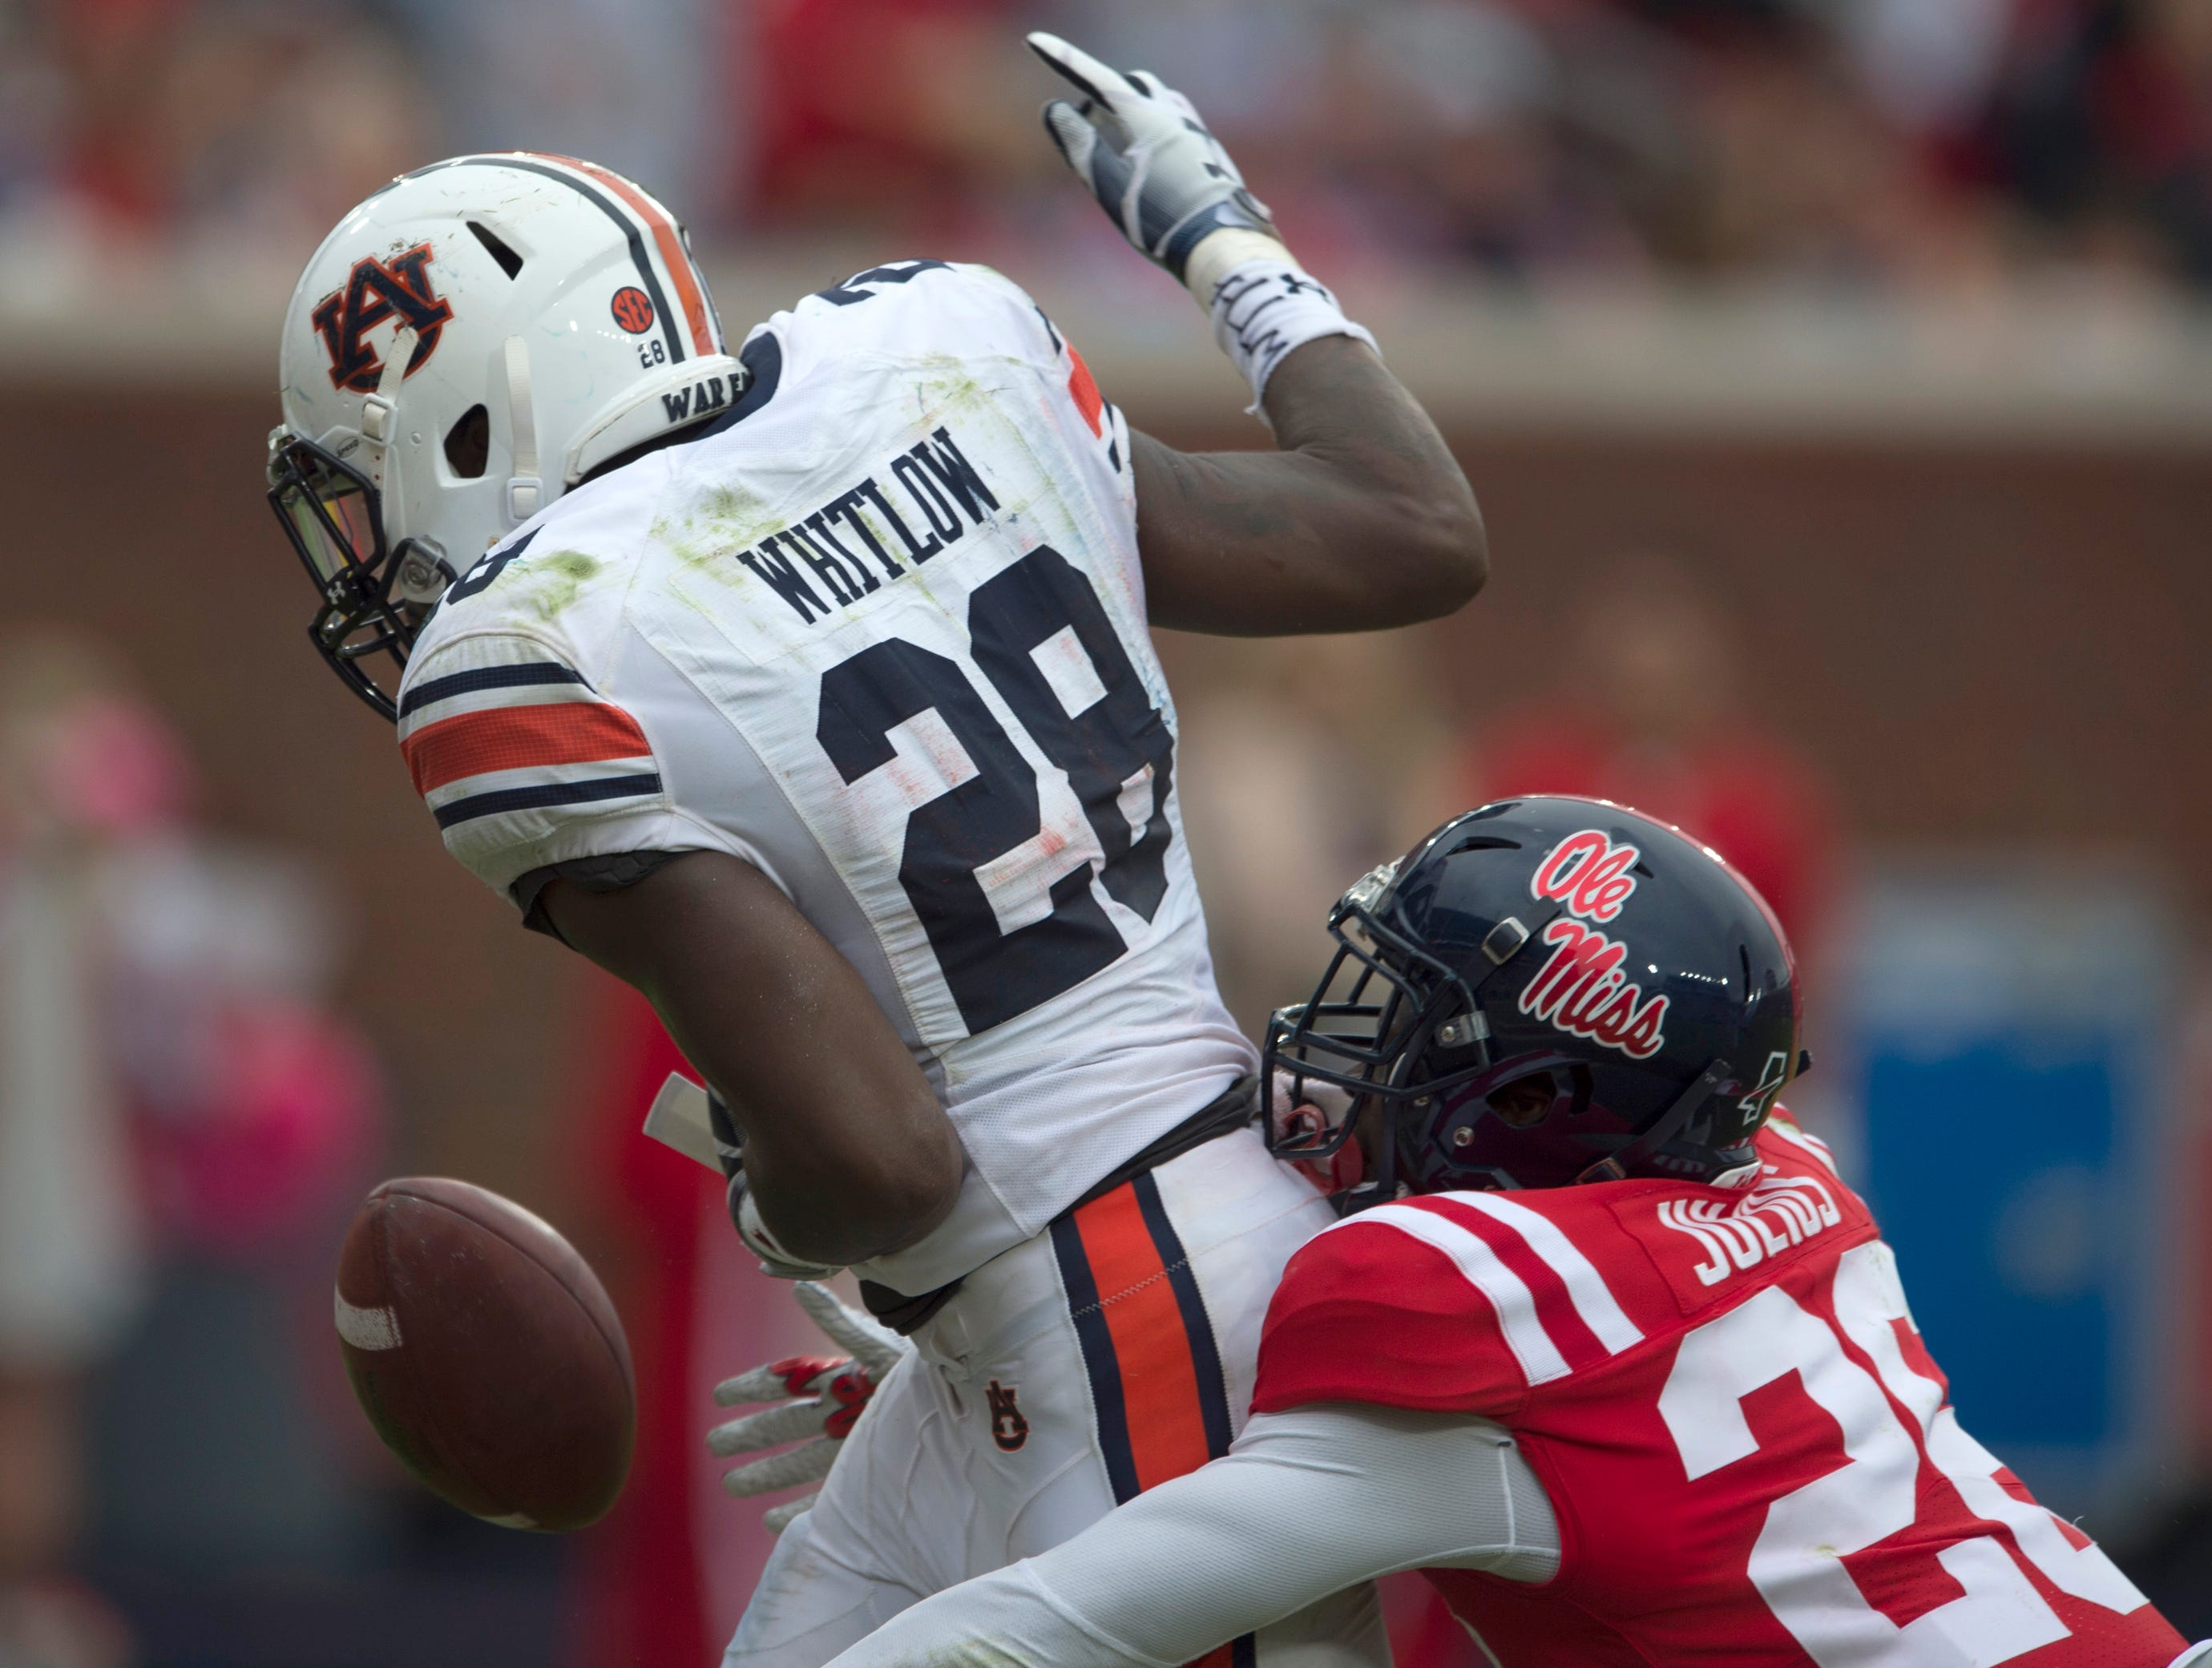 Auburn's JaTarvious Whitlow (28) has the ball knocked out by Ole Miss' Jalen Julius (26) on the one-yard line at Vaught-Hemingway Stadium in Oxford, Miss., on Saturday, Oct. 20, 2018. Auburn defeated Ole Miss 31-16.